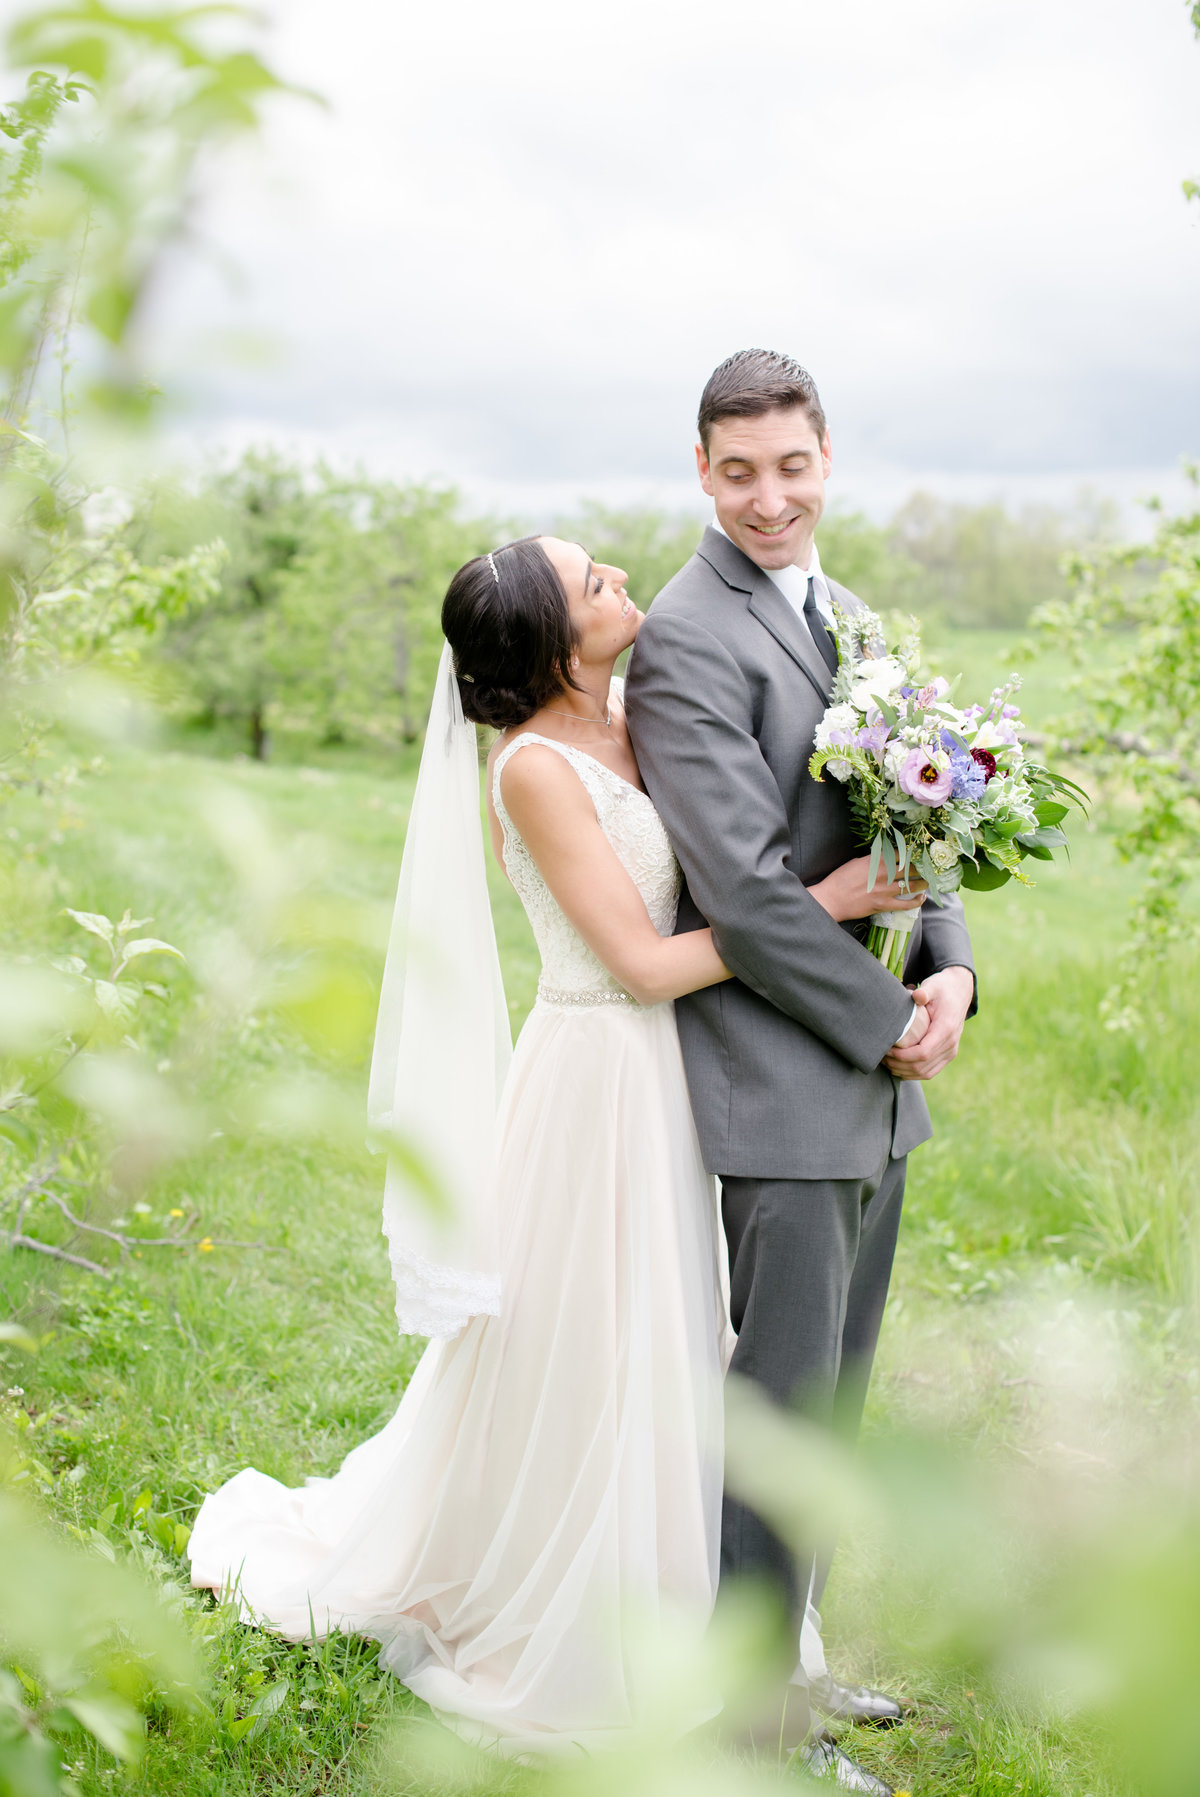 Rustic Barn Wedding Pennsylvania-Rodale Institute Wedding Raquel and Daniel Wedding 22979-34